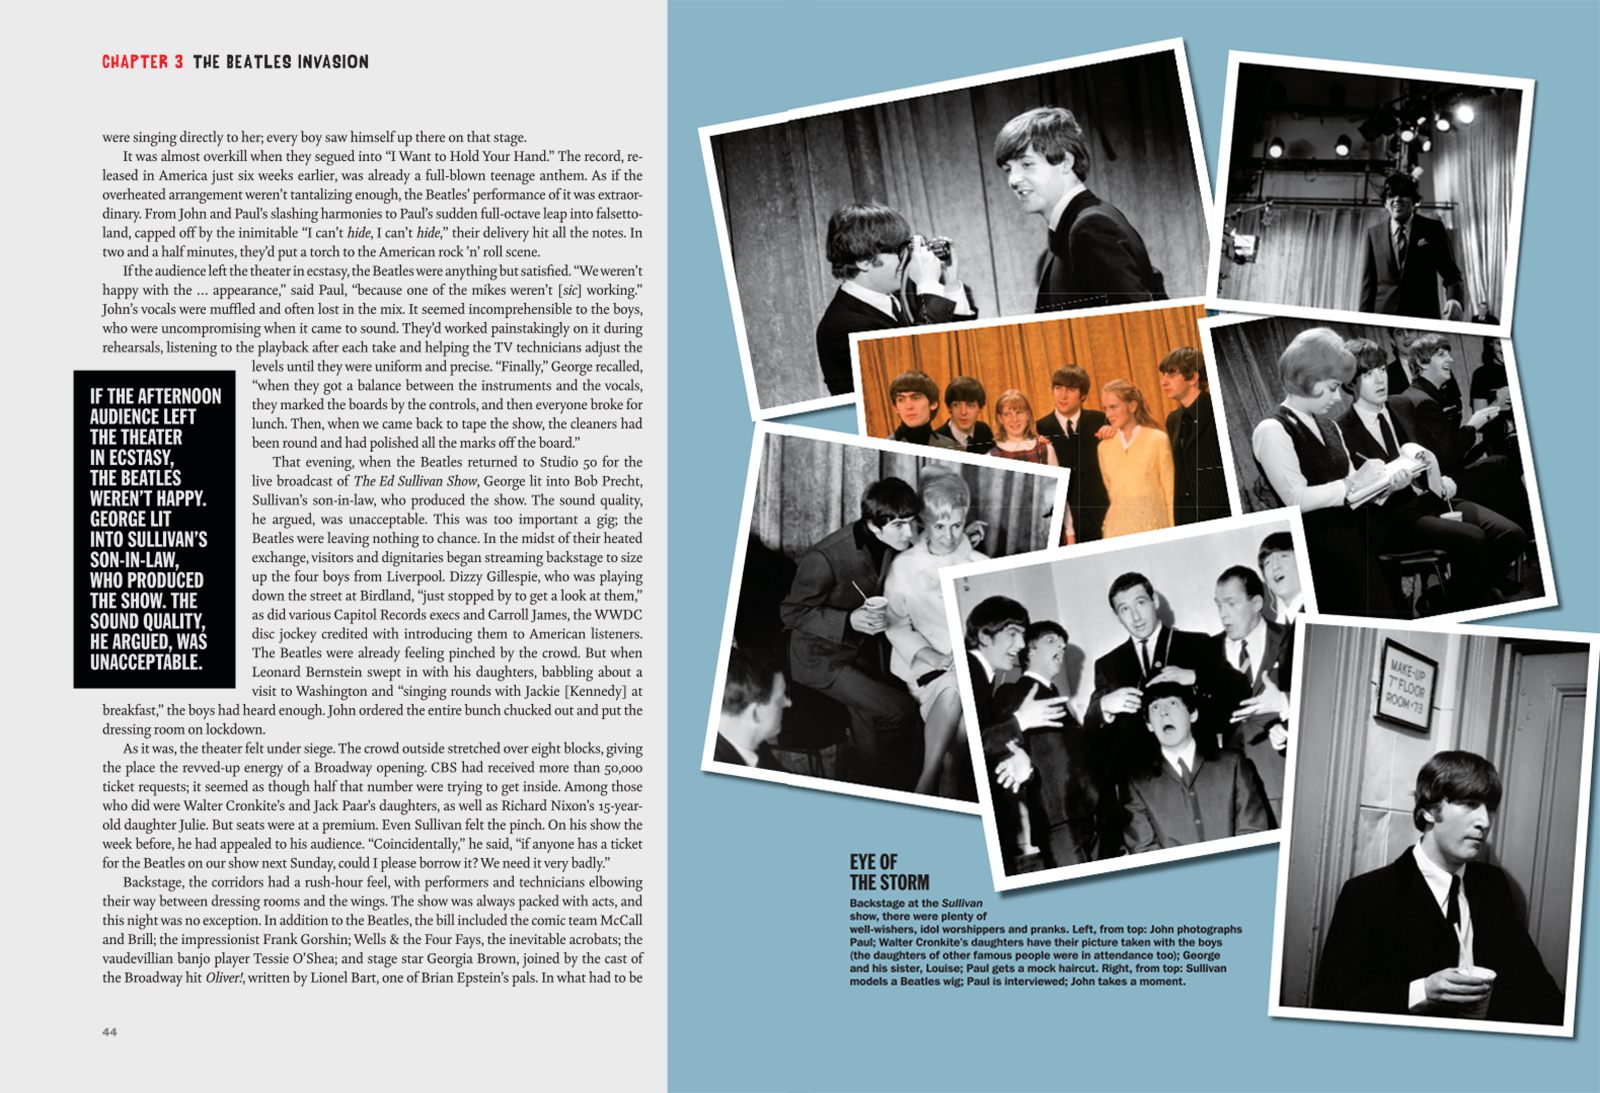 TIME_BK_BEATLES_50TH_montage.jpg